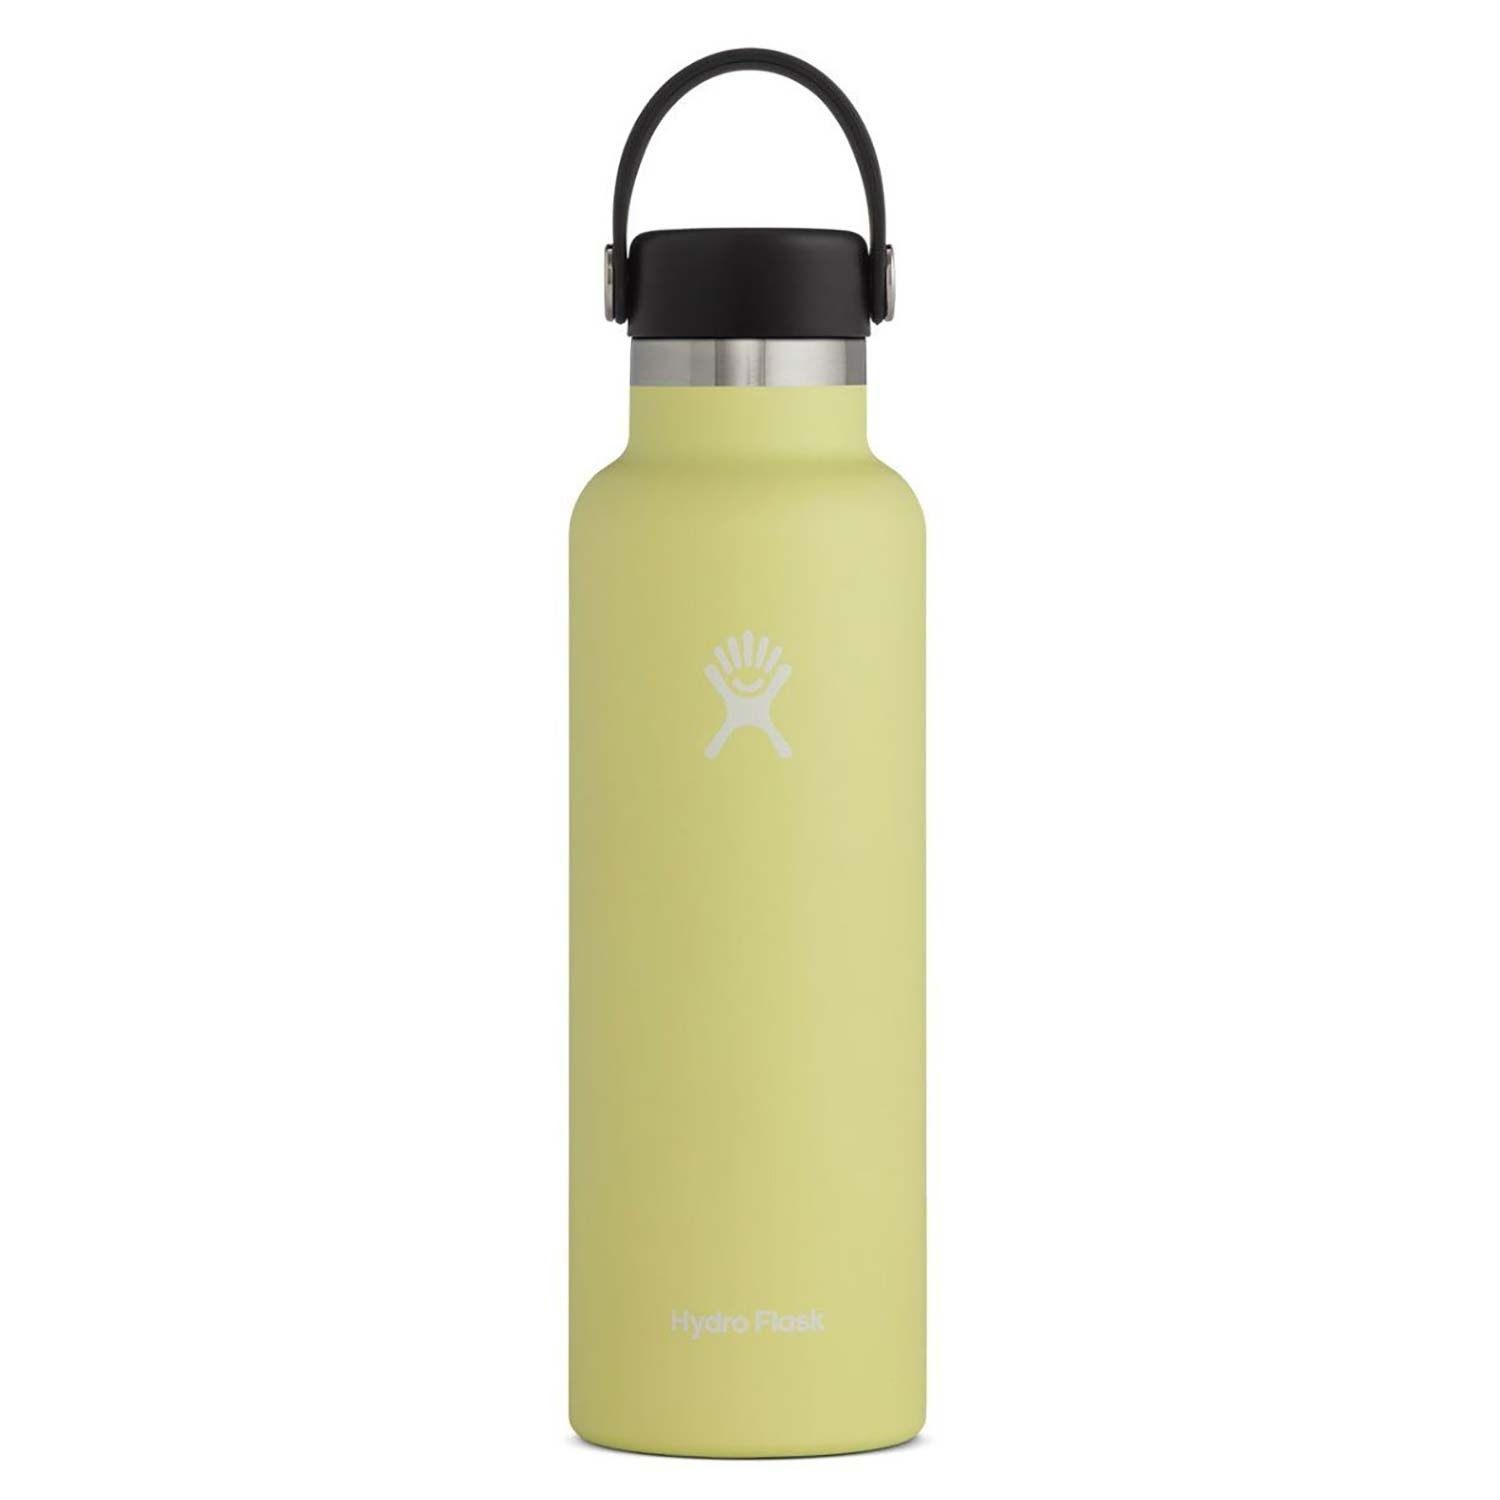 HYDRO FLASK - 21oz Insulated Bottle - Pineapple